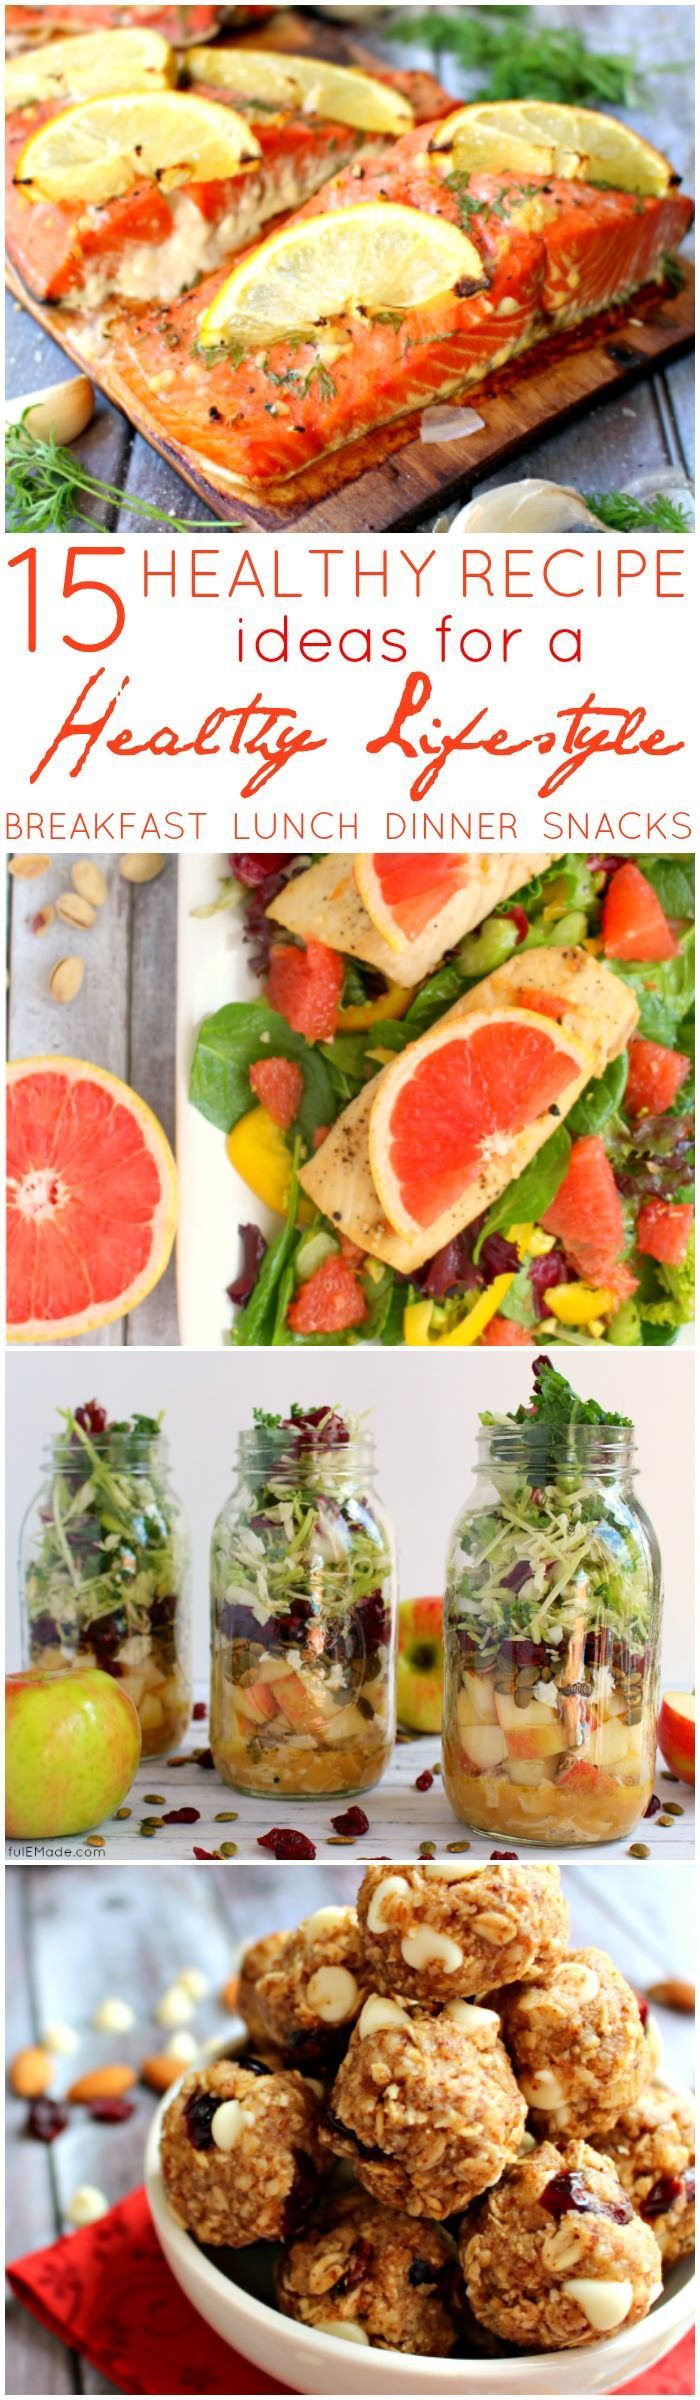 Looking to start a weight loss journey or maybe just need to add some healthier meal options into your everyday routine?  These 15 simple, easy and fresh recipes are just as satisfying as they are delicious!  Great for jump-starting your healthy New Years